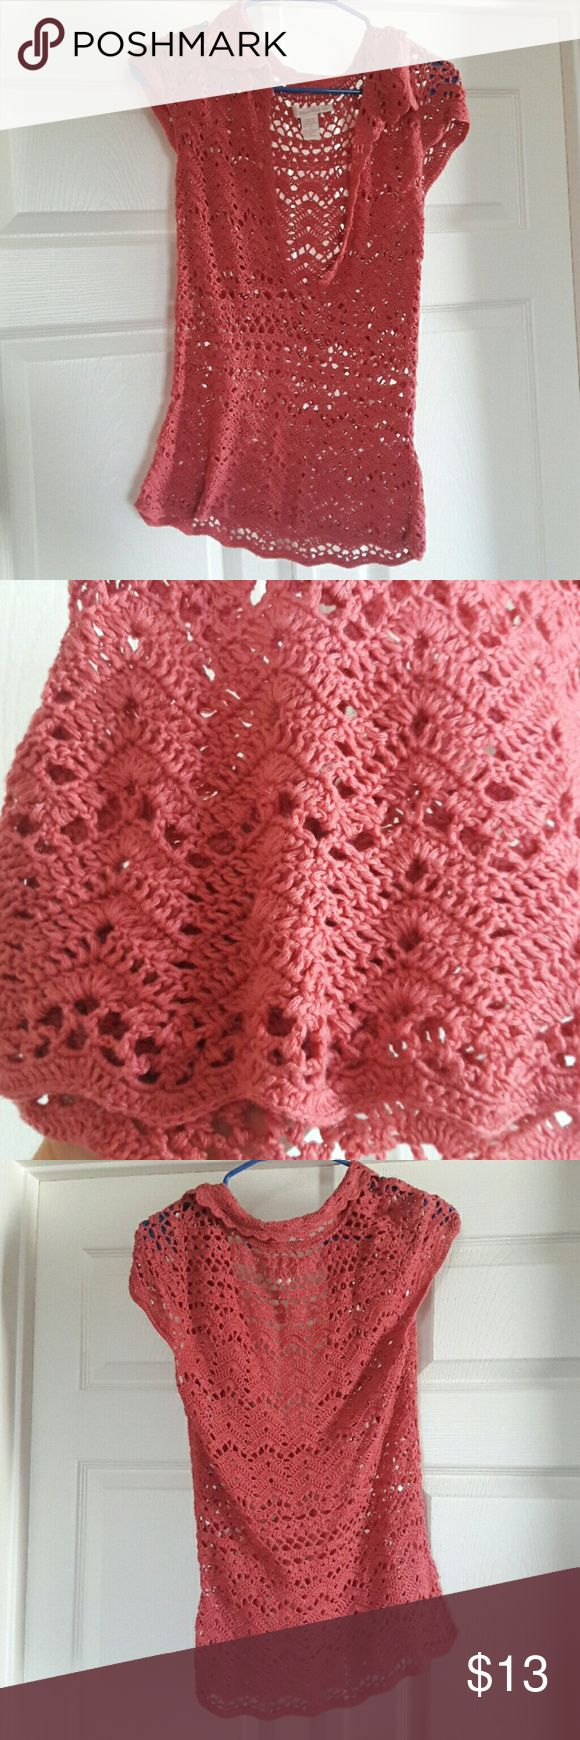 ADORABLE crochet short sleeve top valentines day! Perfect V- Day top!  Crochet, pink, soft, NO snags Tops Blouses